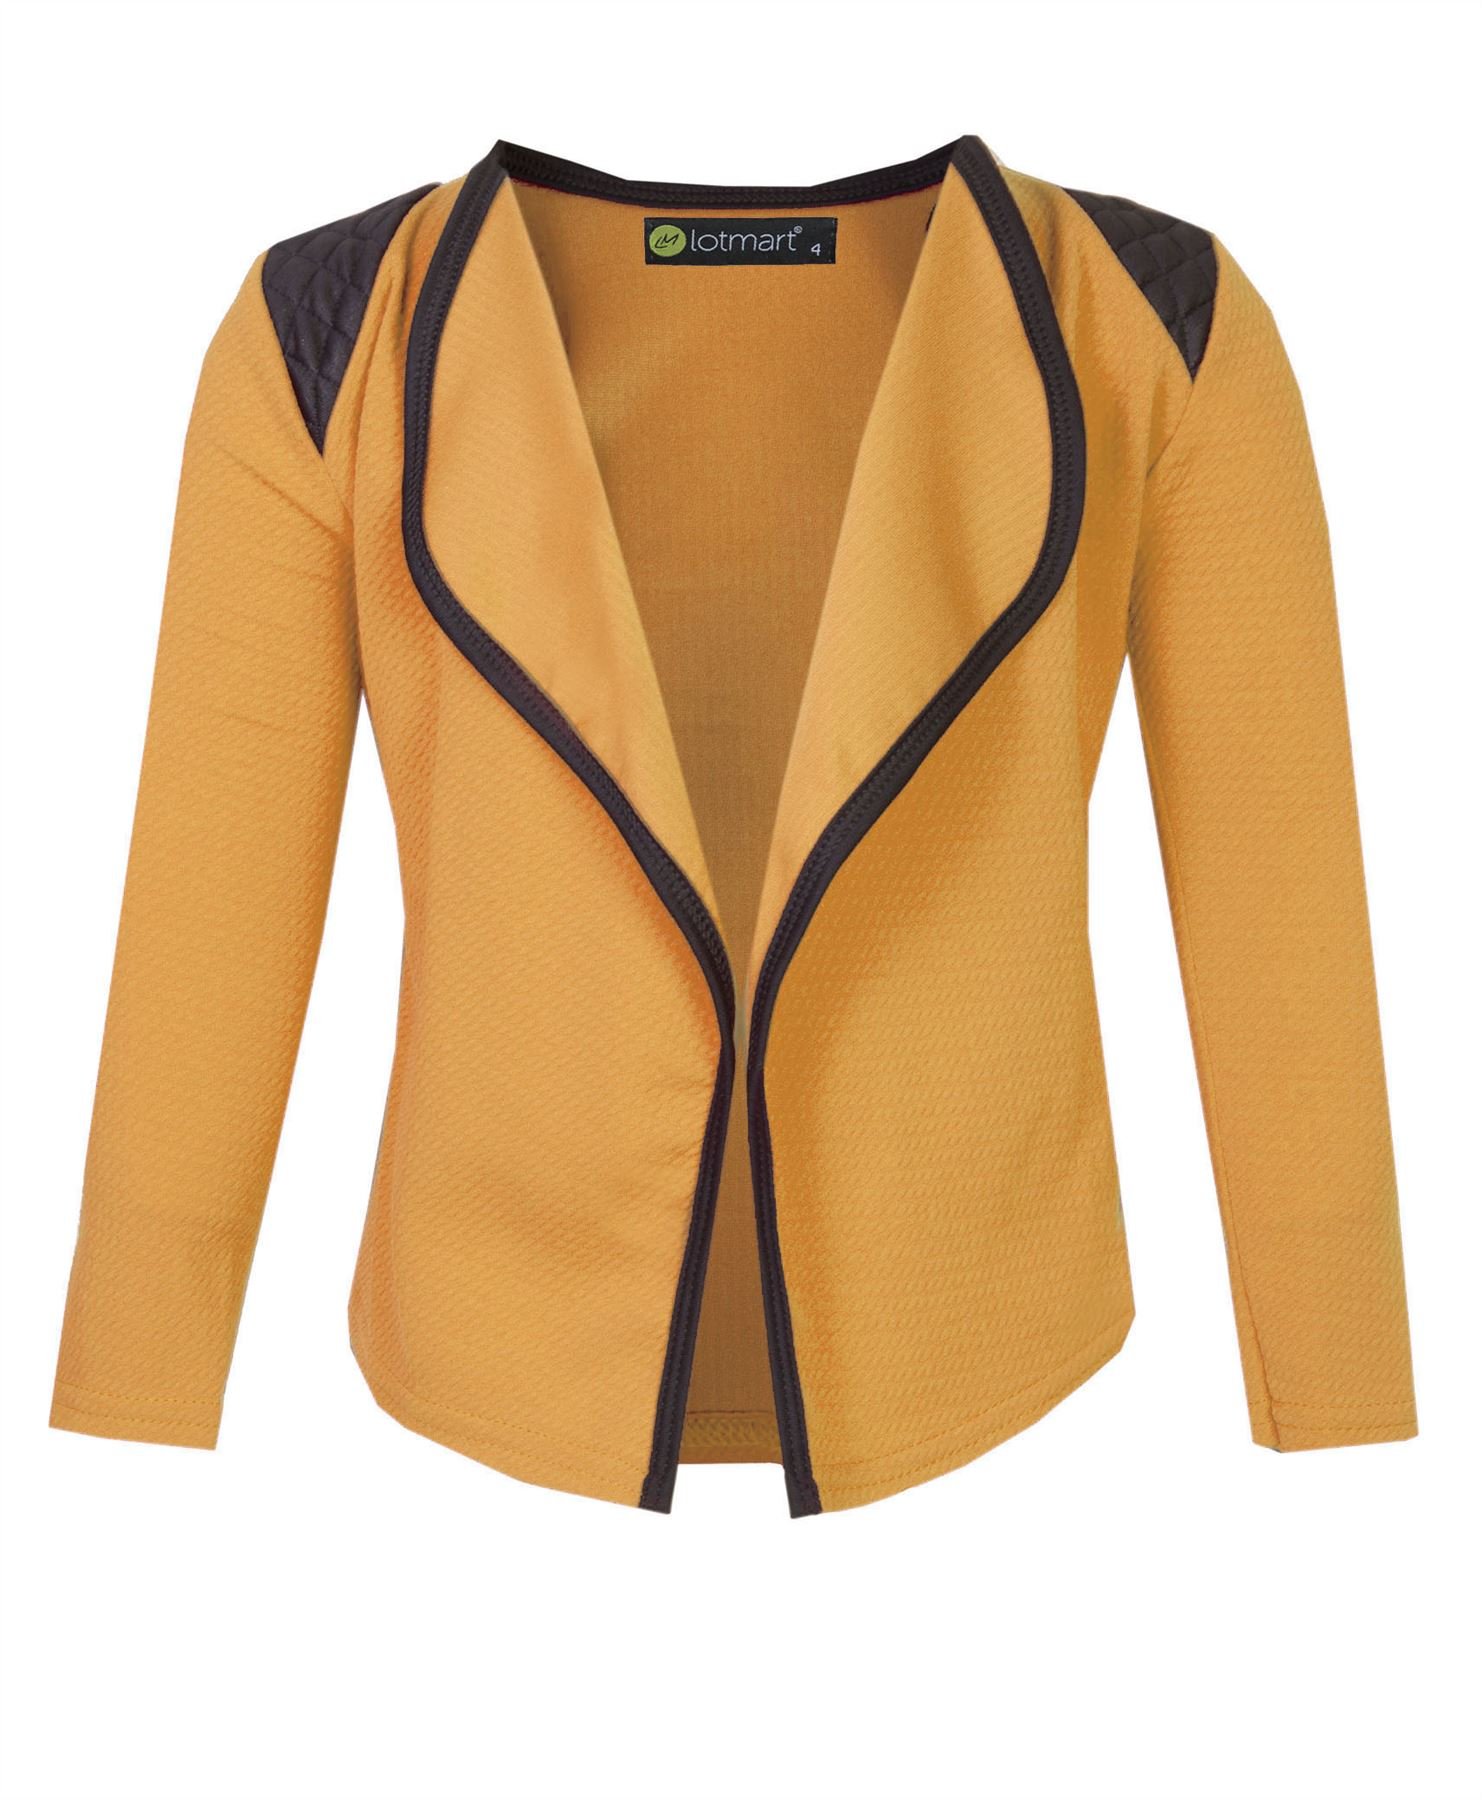 Girls-Open-Front-Jacket-Kids-Long-Sleeve-Quilted-Shoulder-Cardigan-Top-3-14-Y thumbnail 13